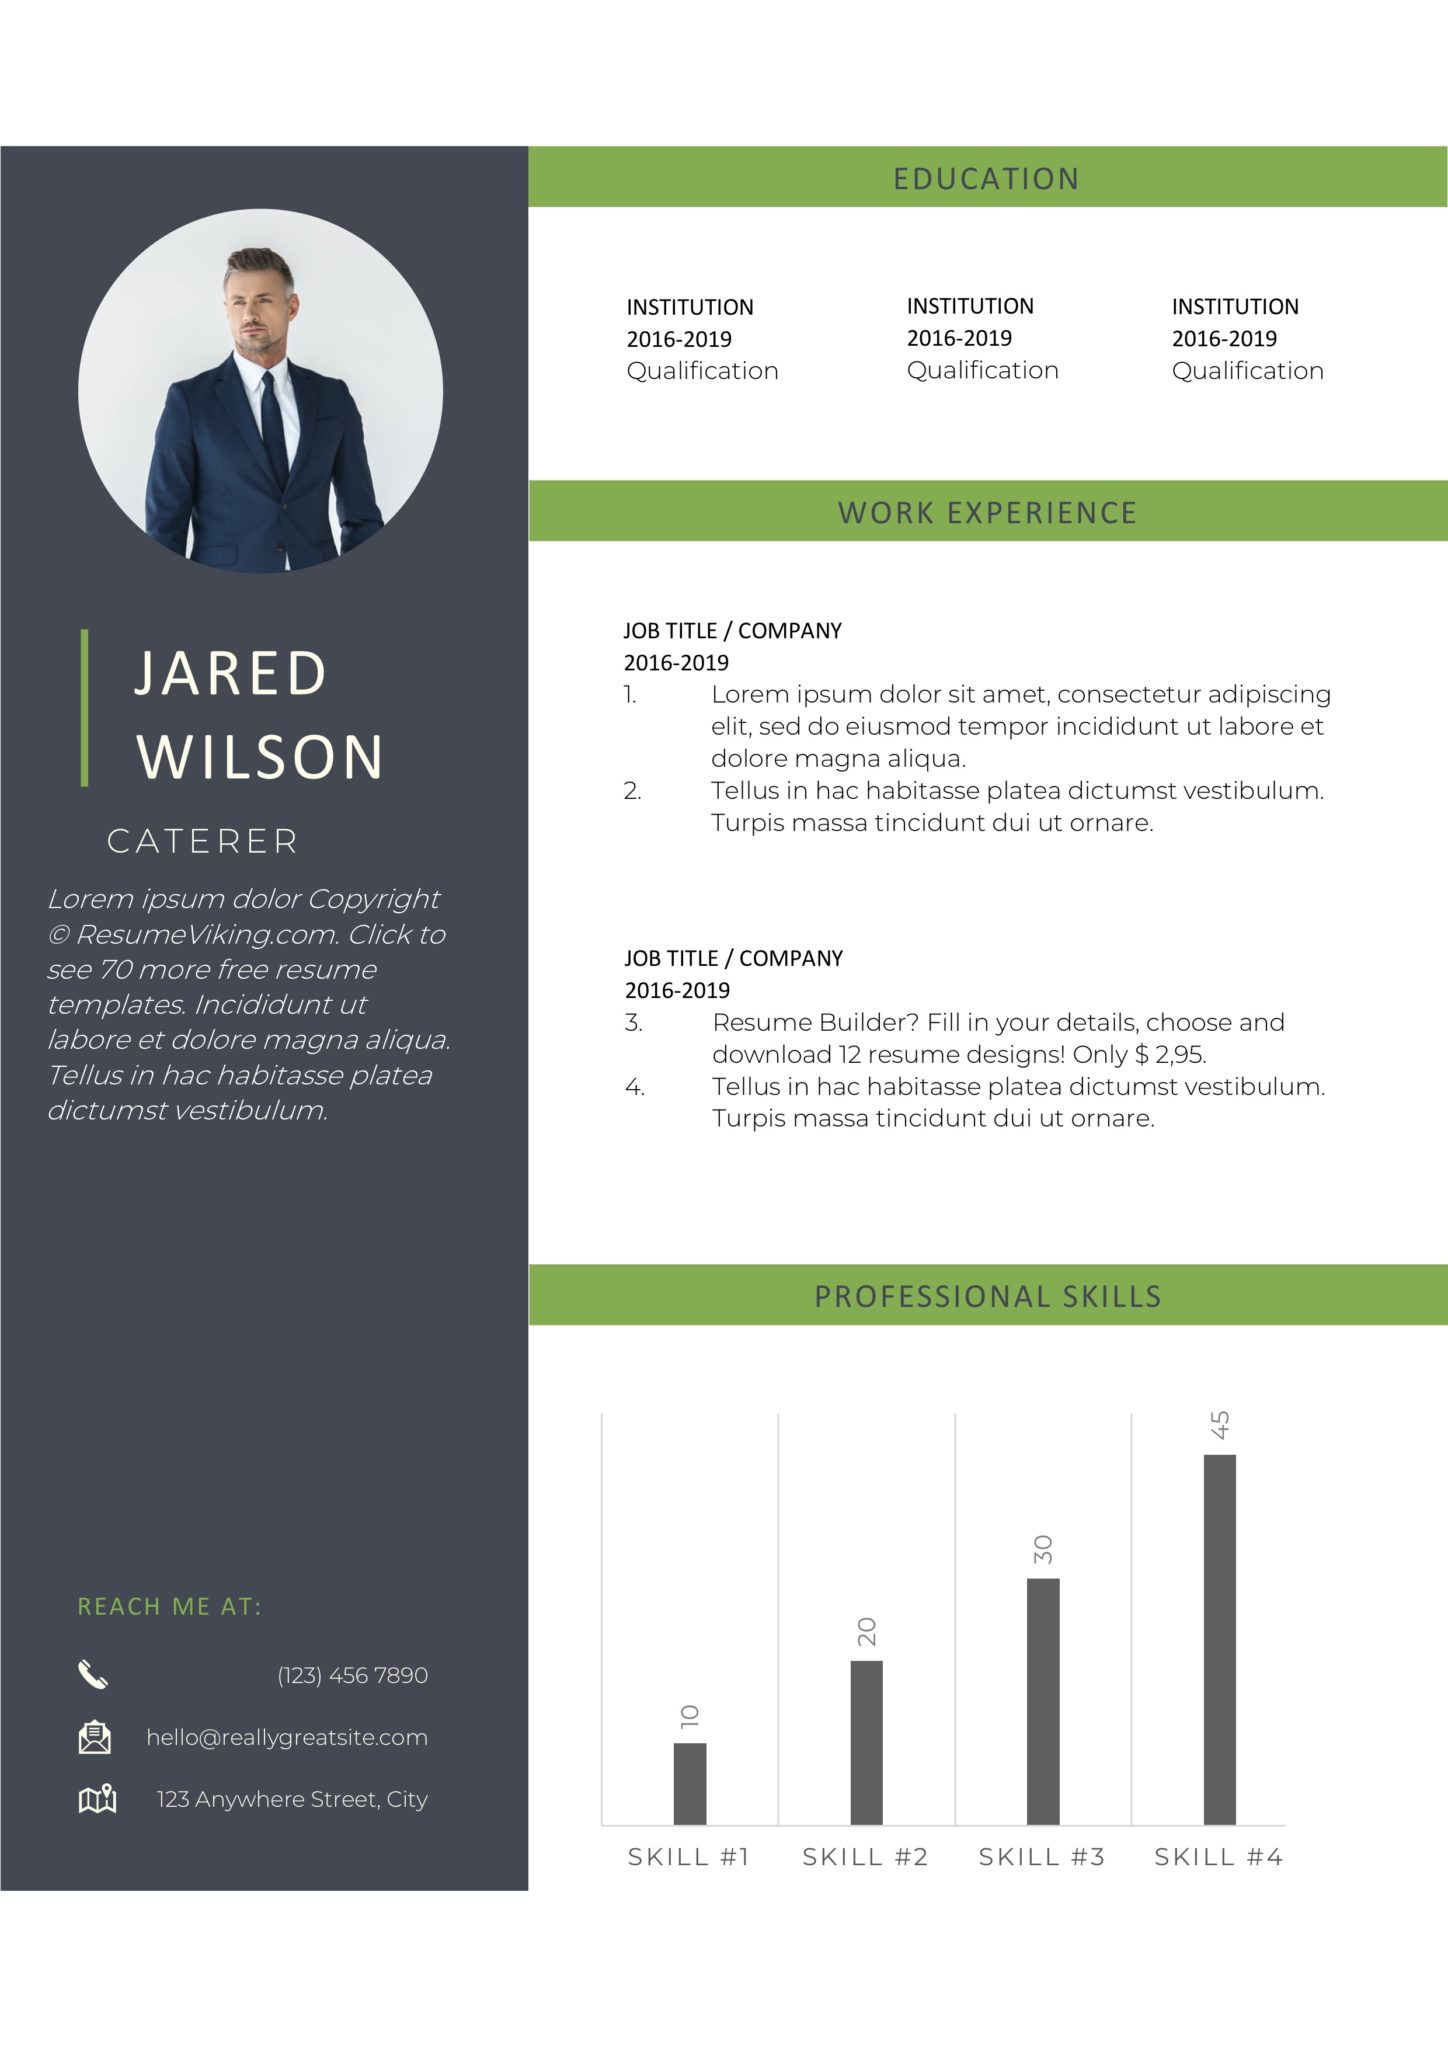 free word resume templates in ms microsoft template resumeviking scaled talent Resume Free Microsoft Word Resume Templates 2020